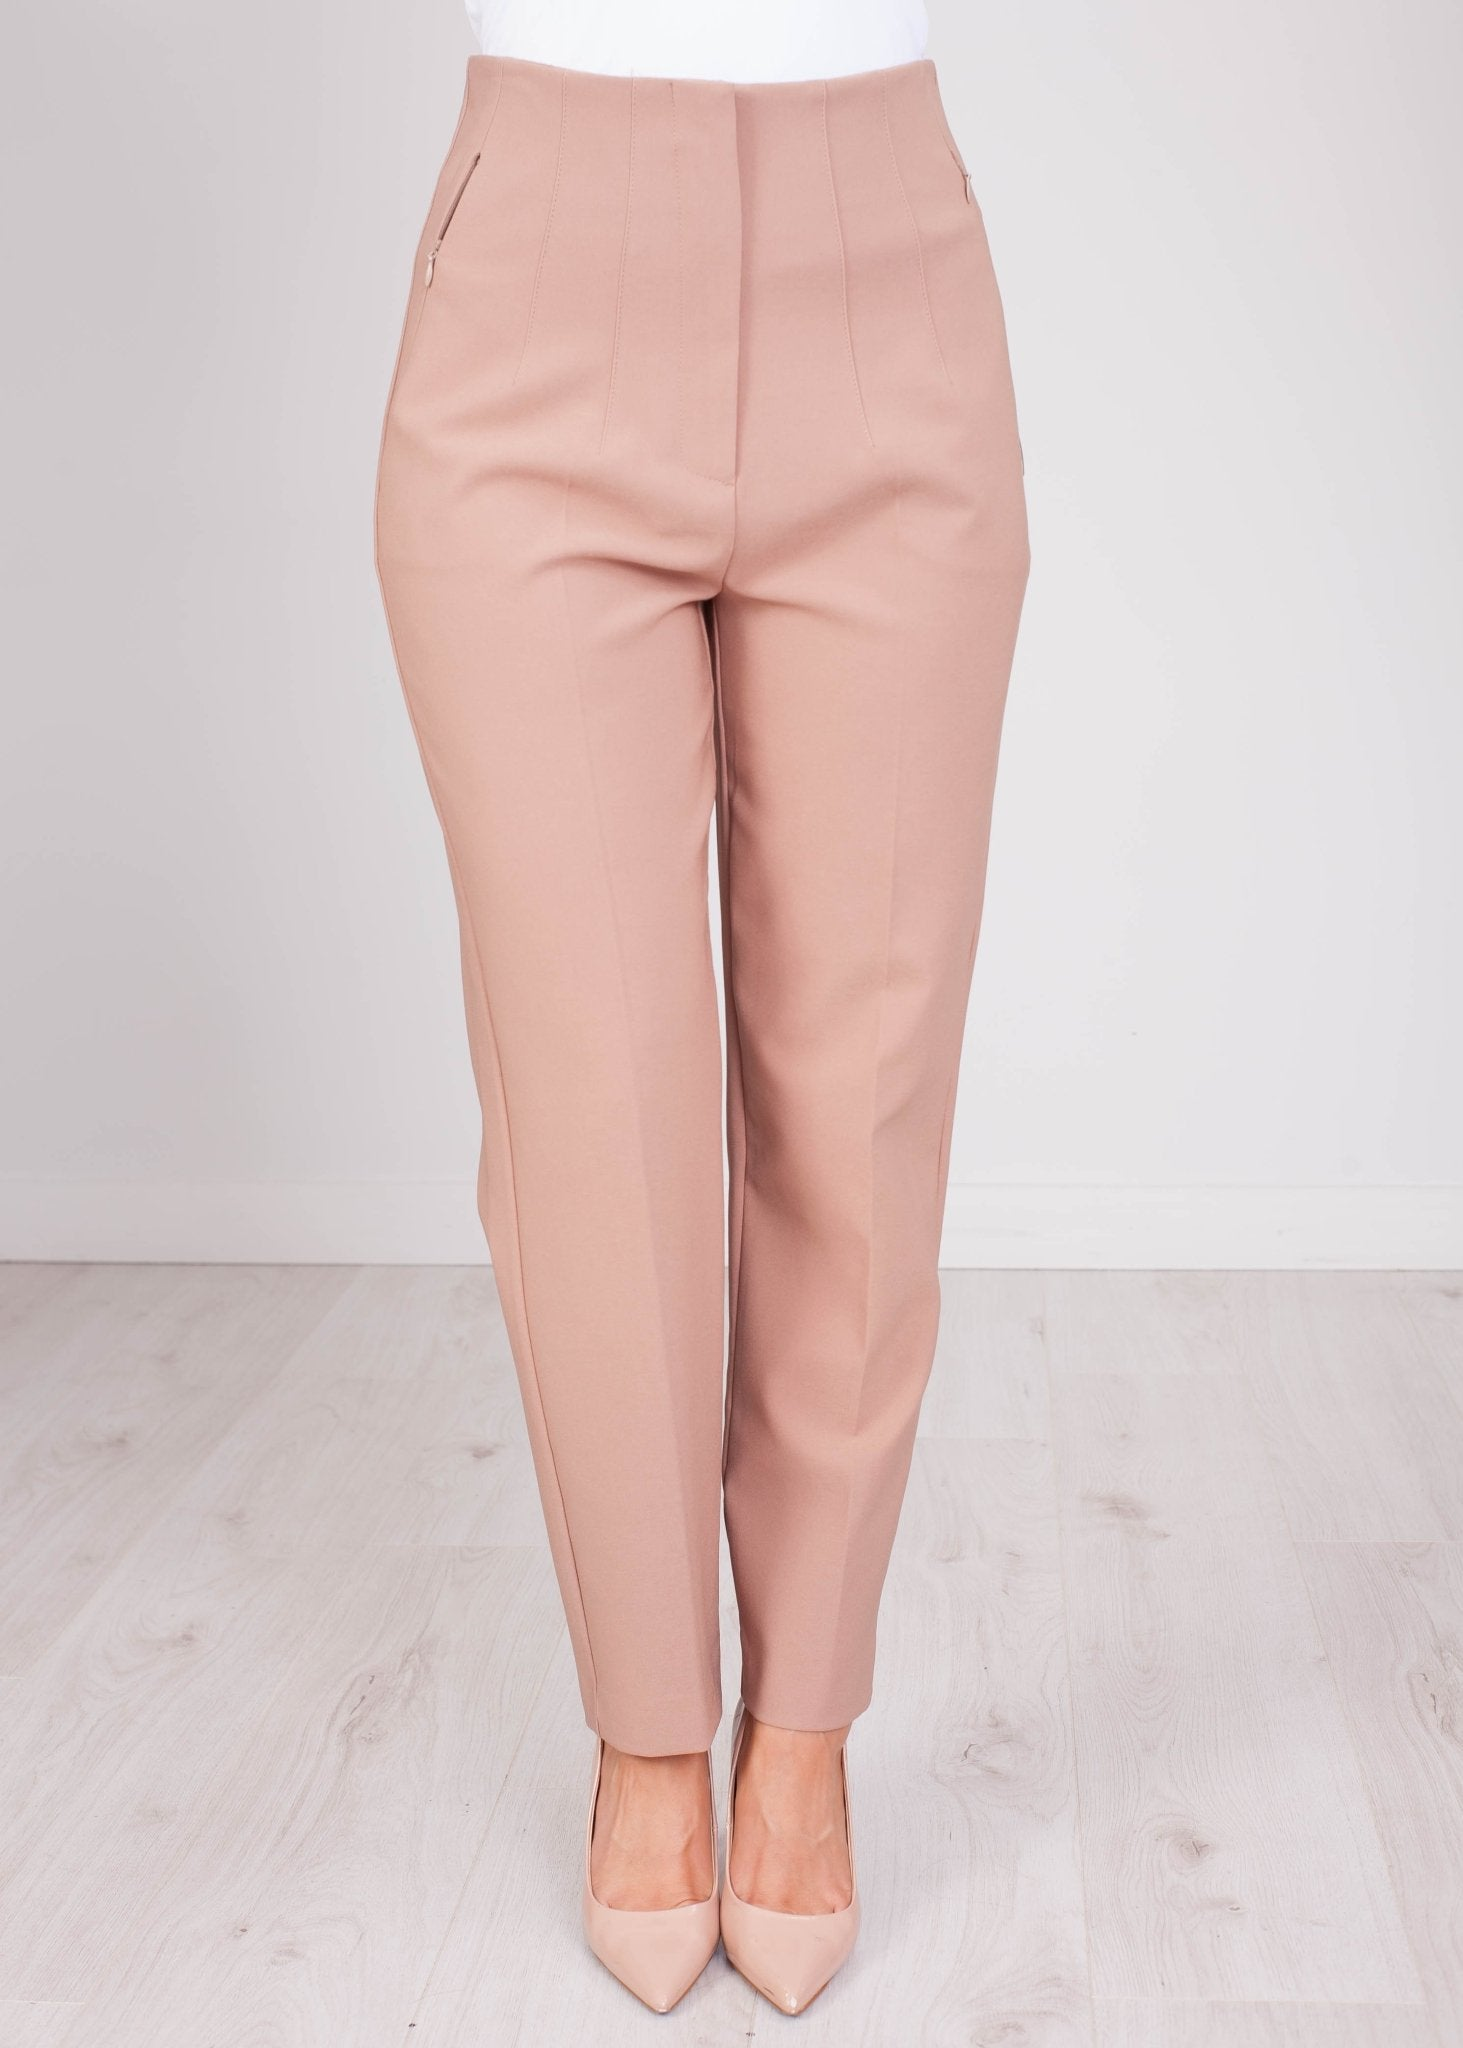 Eva Tan Tailored Trouser - The Walk in Wardrobe